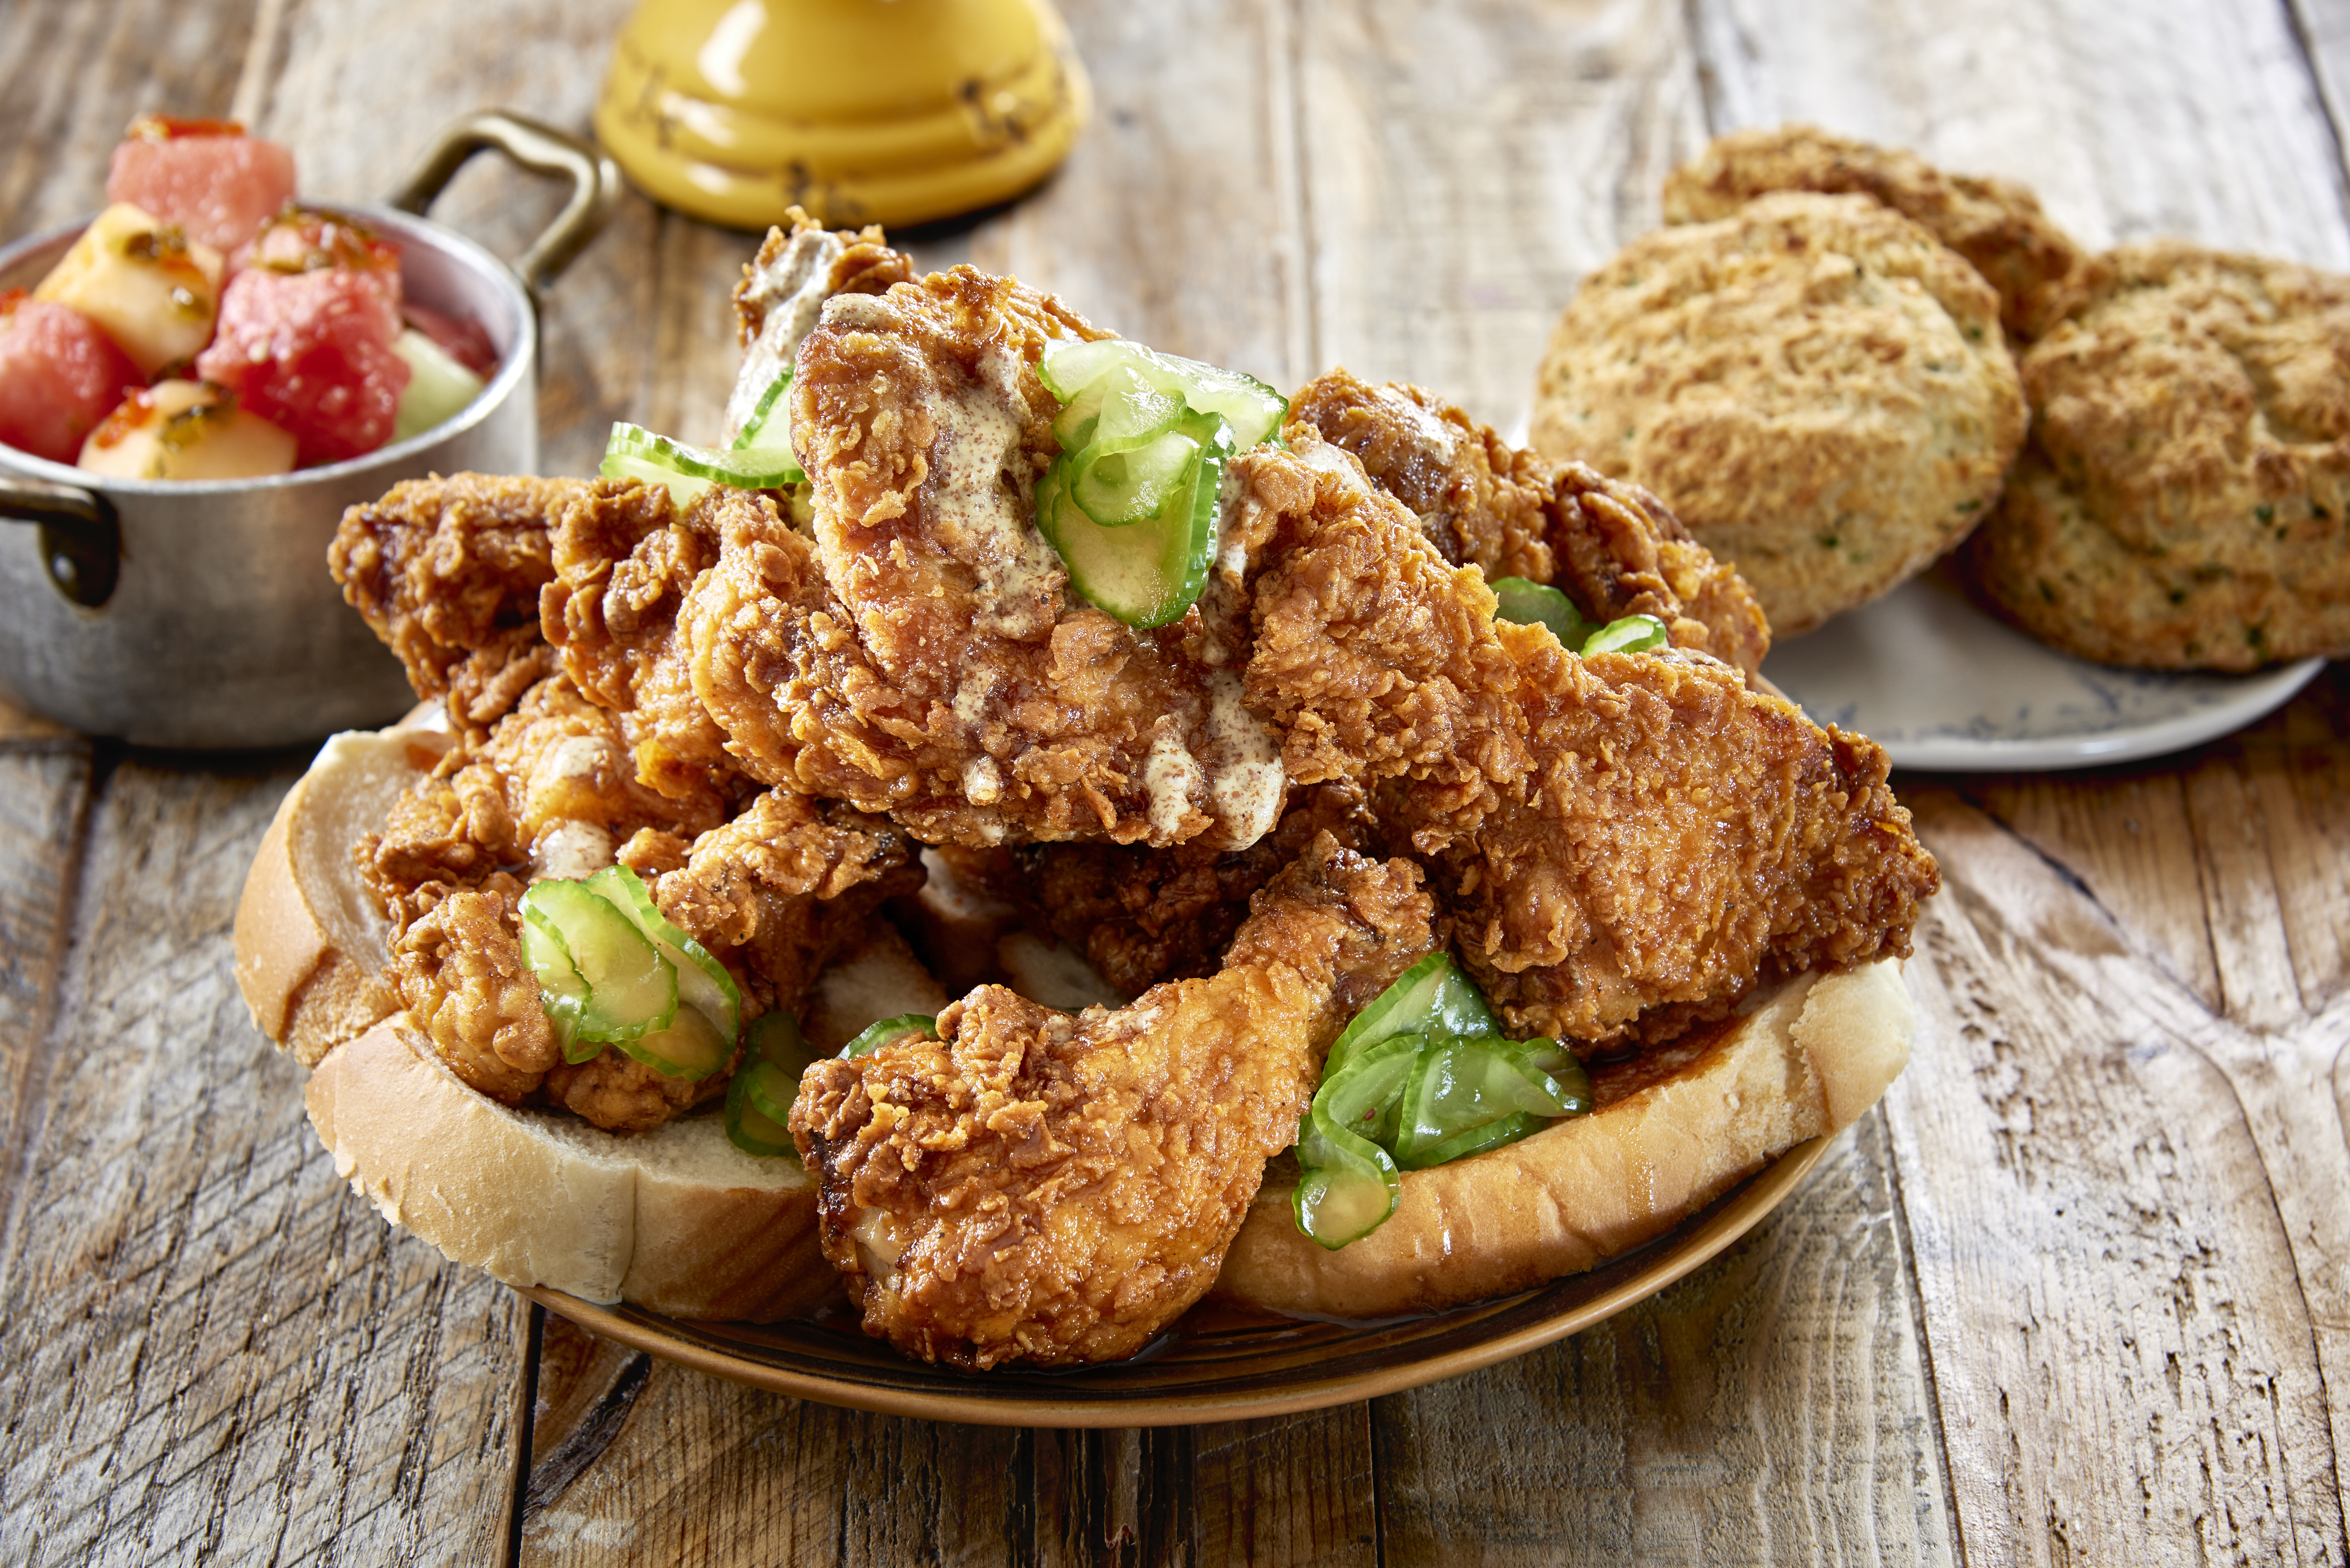 nashville-hot-chicken-2